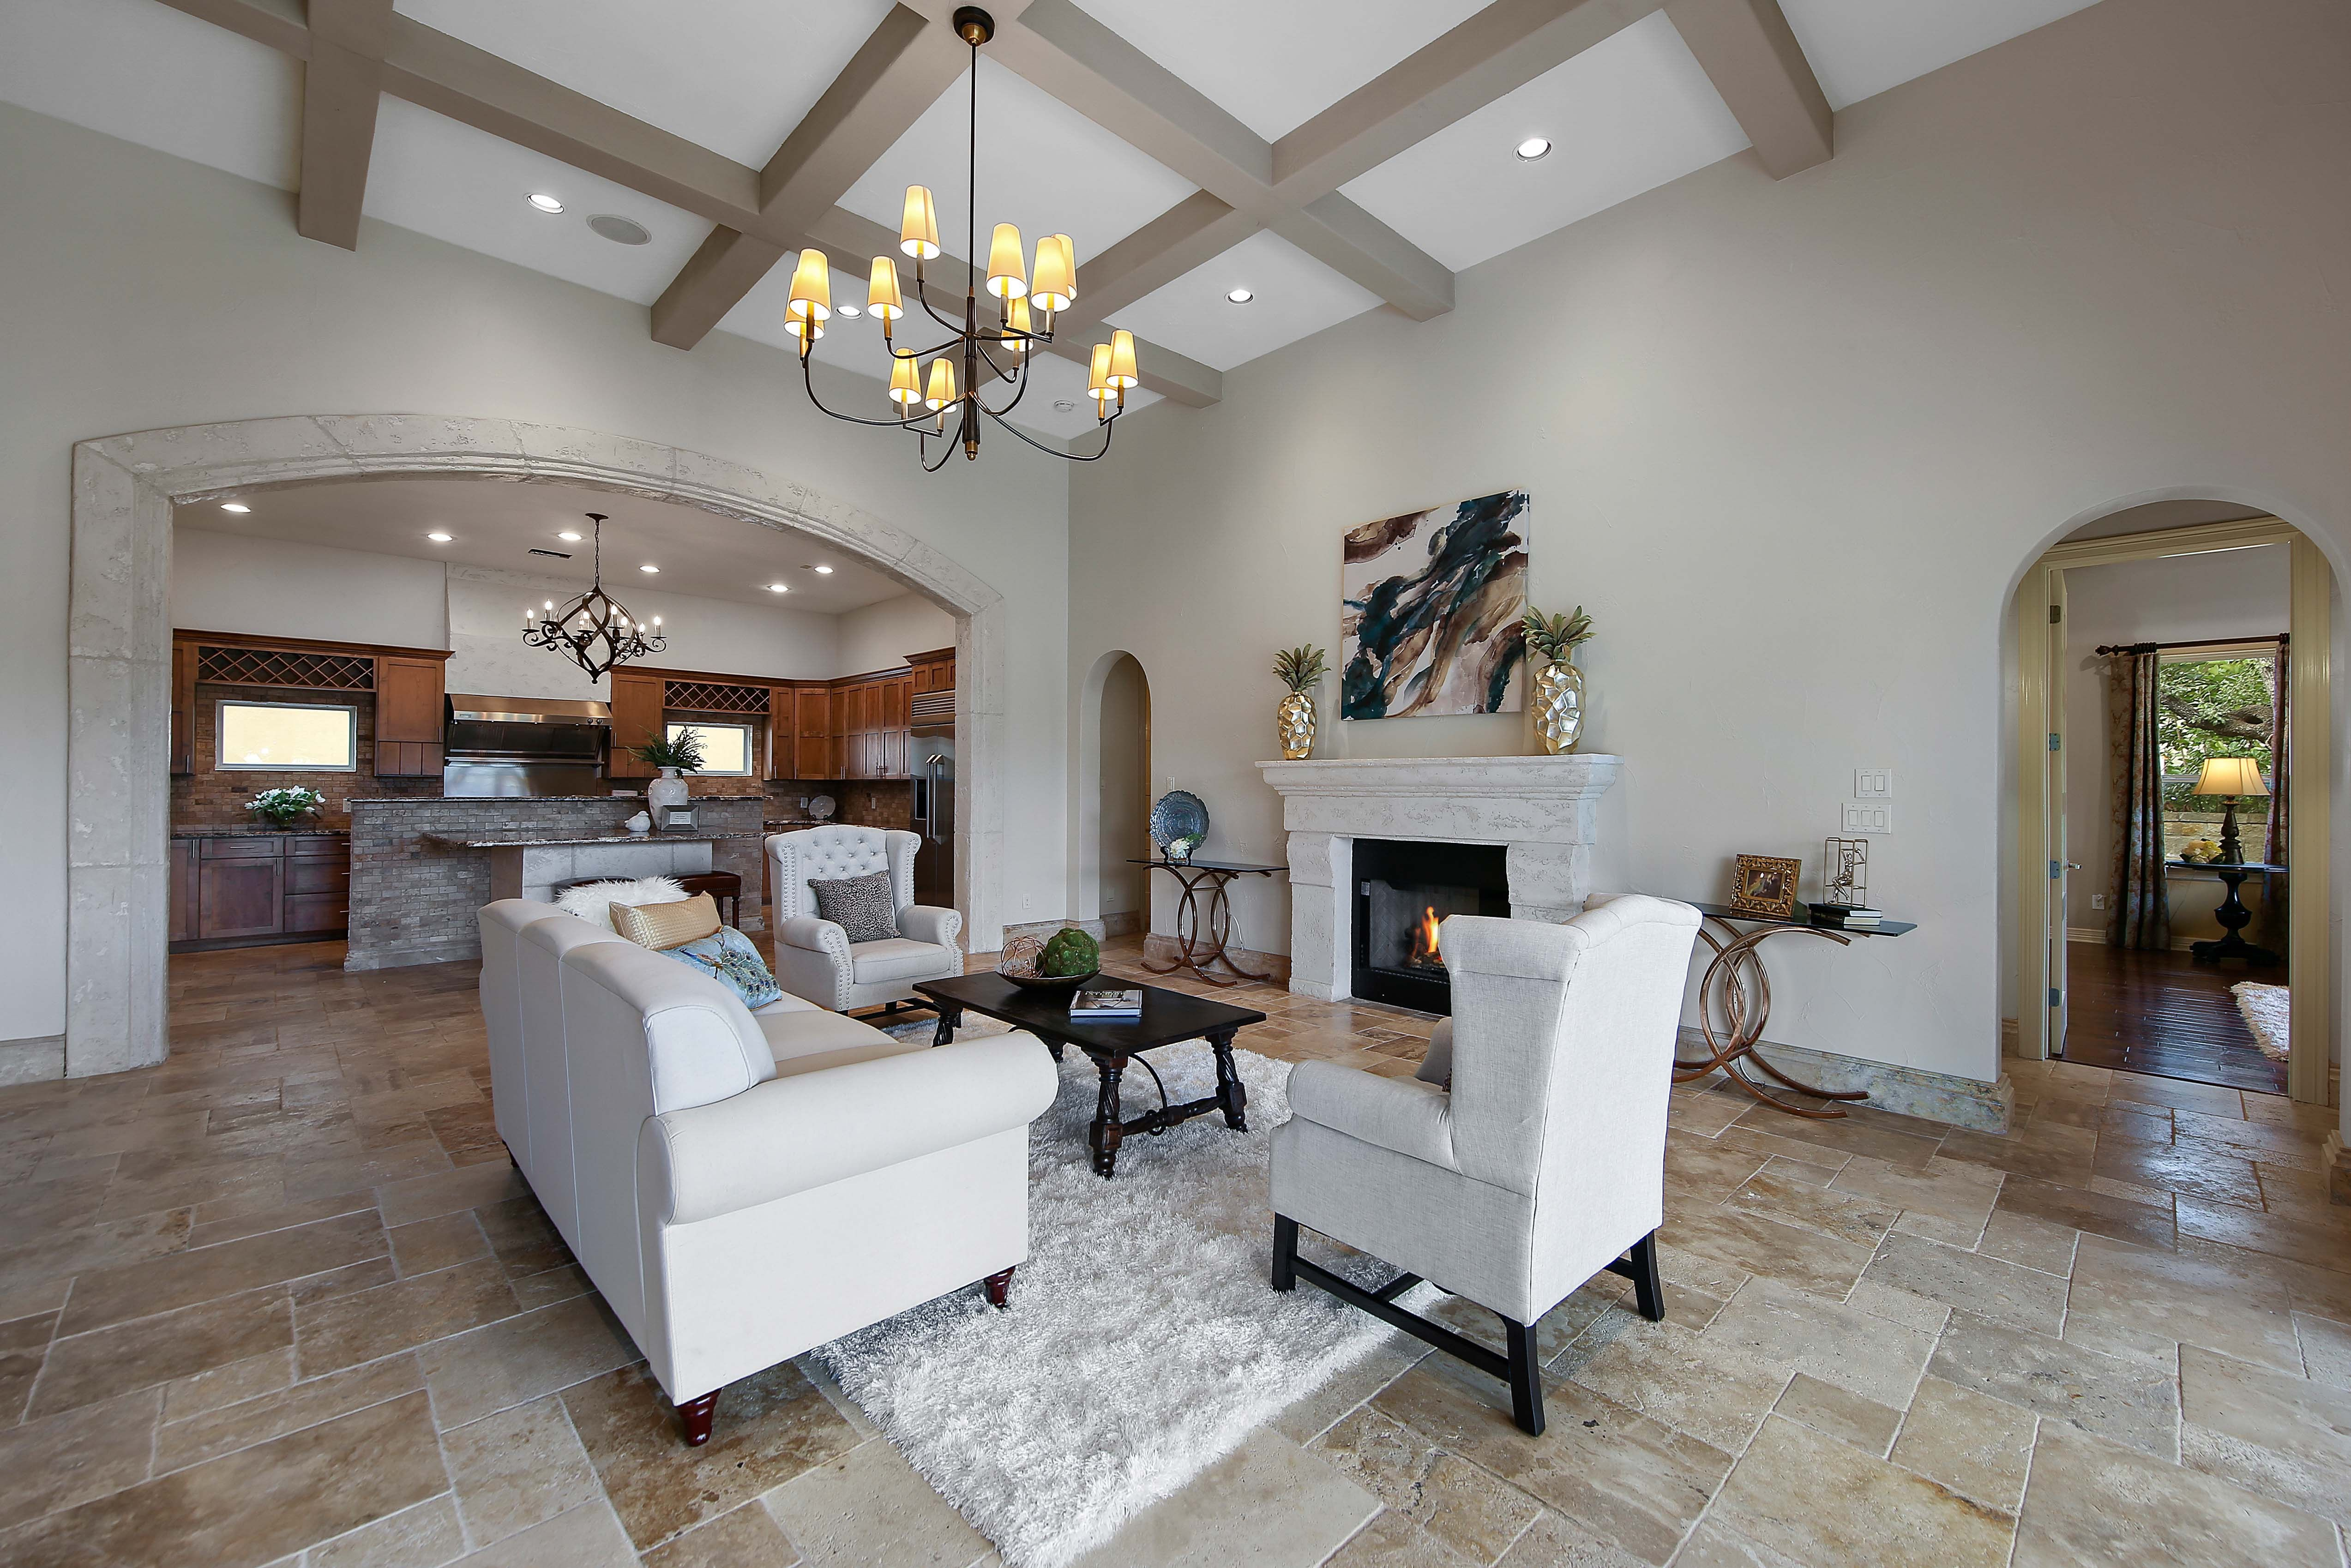 Open Floor Plan Living Room Open To The Kitchen Transitional Luxury Home Luxury House Plans Open Concept Living Room Small Hotel Room #open #floor #plan #living #room #ideas